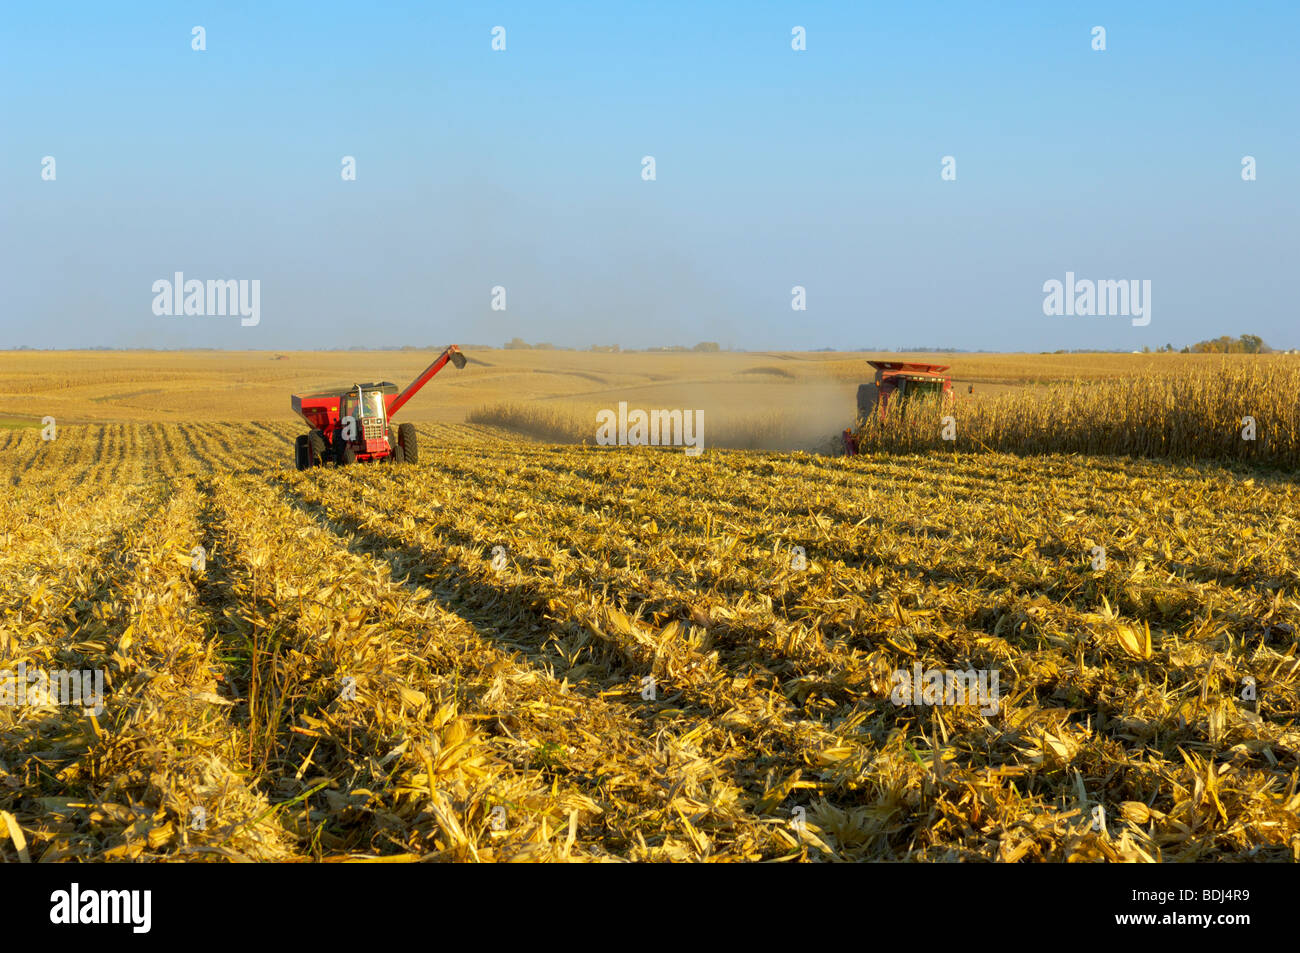 A combine harvests a crop of grain corn in a large grain field, with a grain cart running alongside nearby / Iowa, - Stock Image